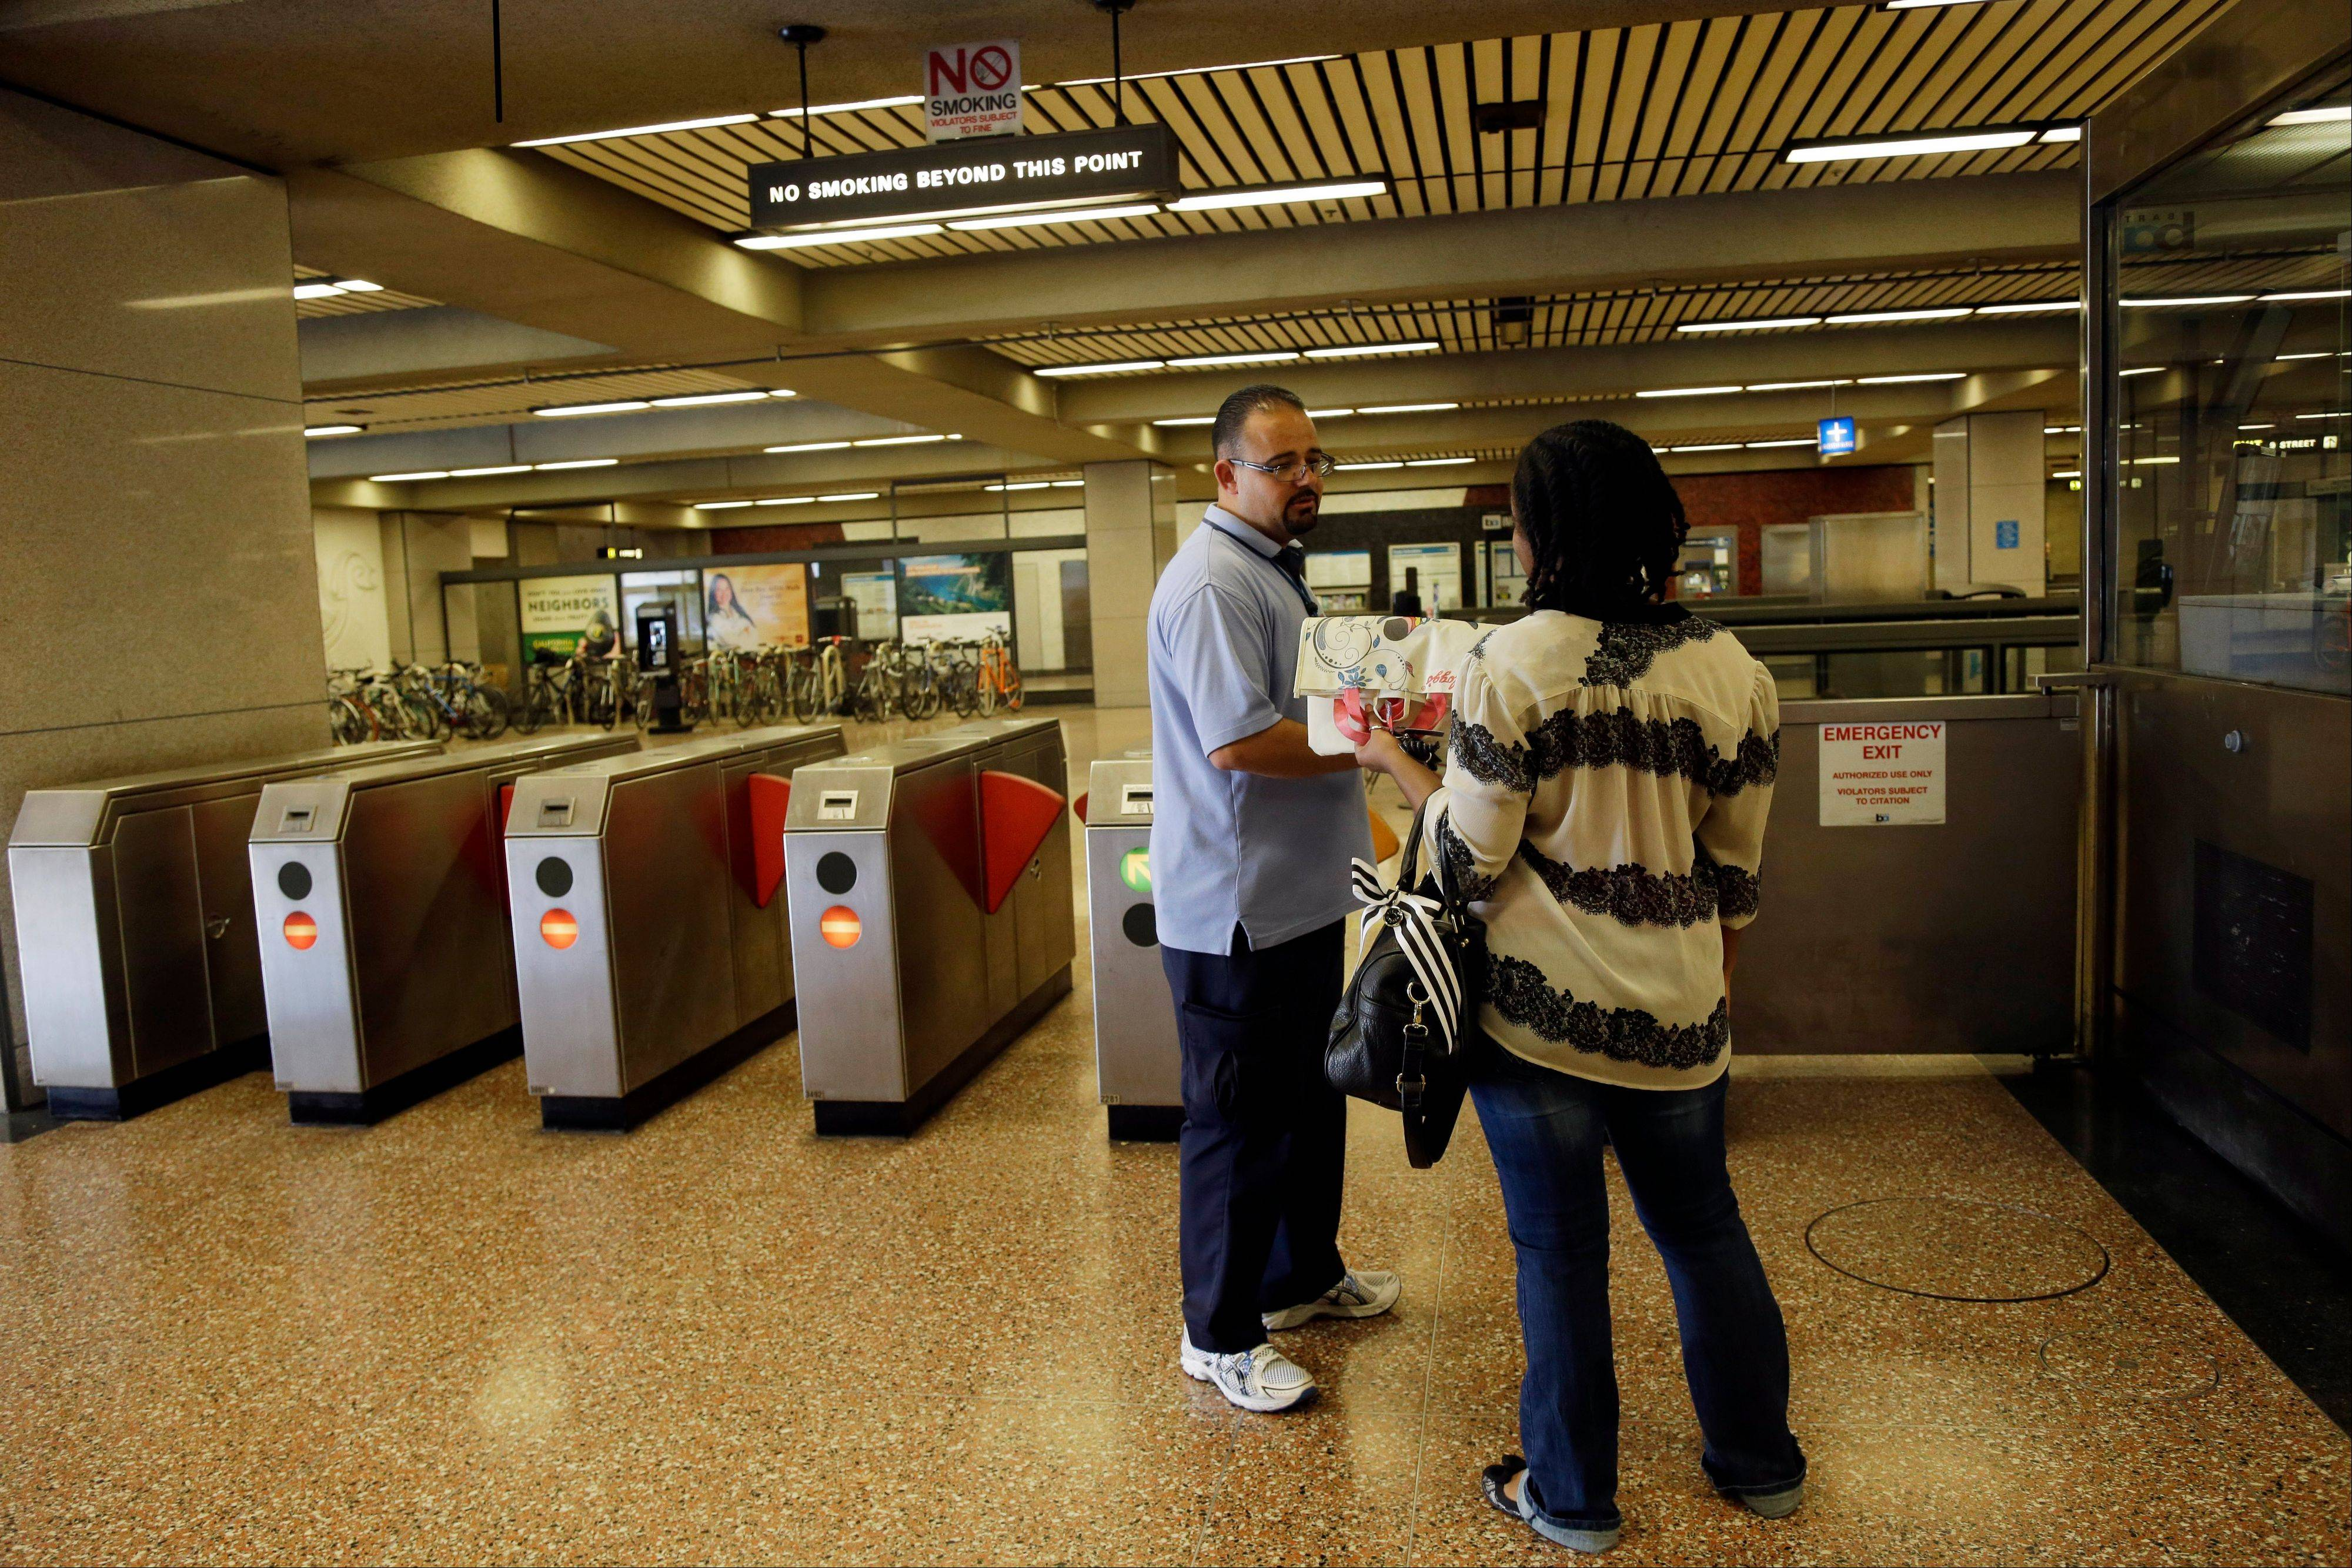 BART station agent Mark Madrigal helps a customer Friday at the Lake Merritt station in Oakland, Calif.